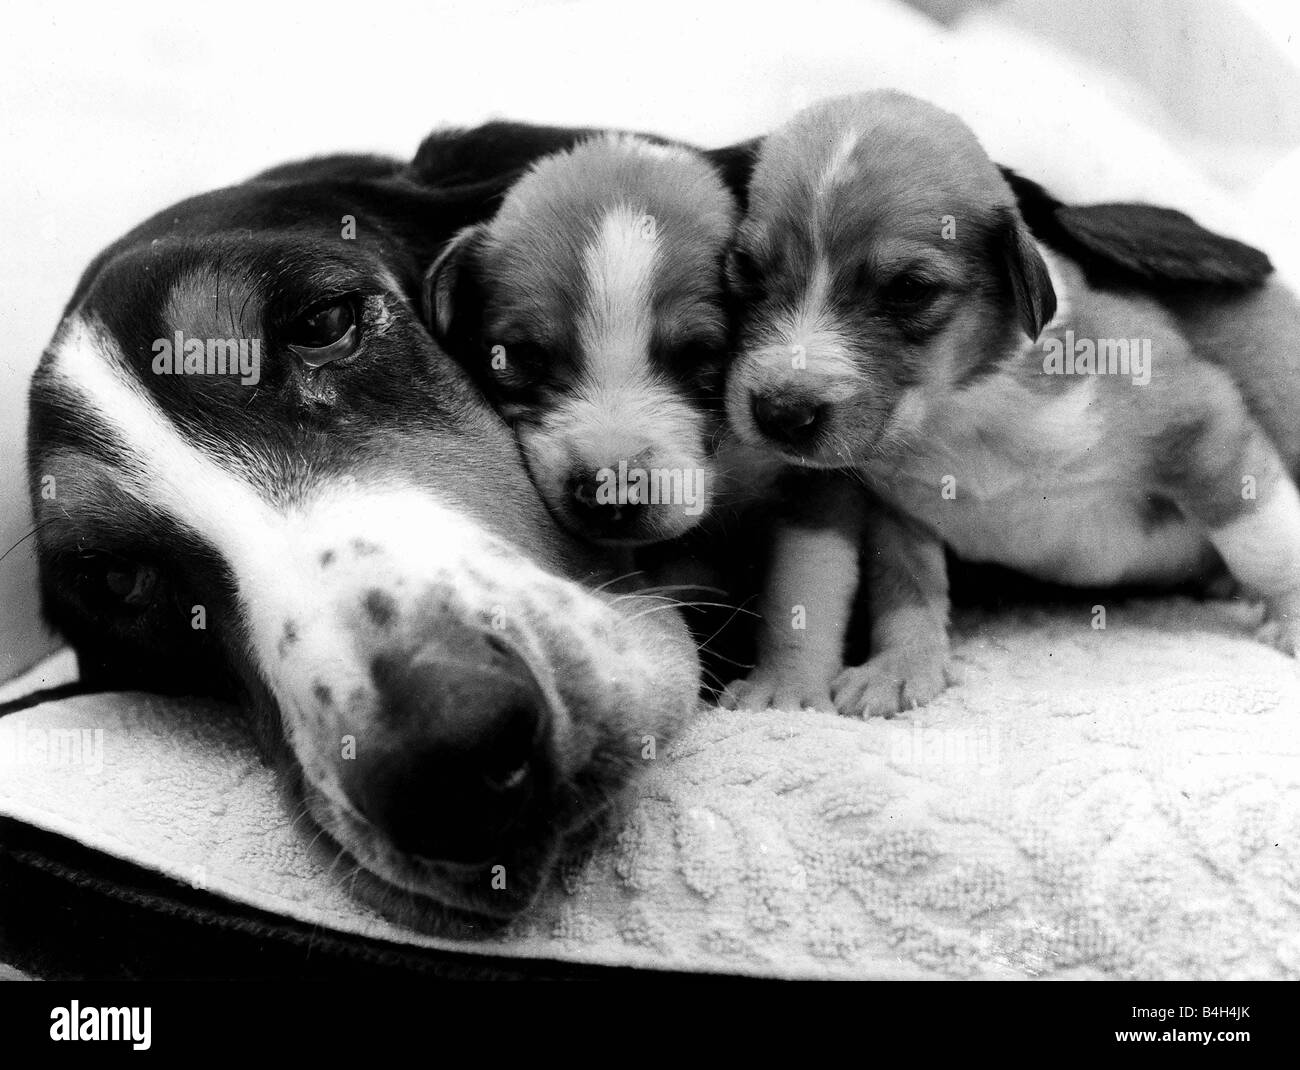 Animals Dog January 1978 Bassie the bassett has found a use for her long lobes keeping her offspring cosy Pups Bill - Stock Image